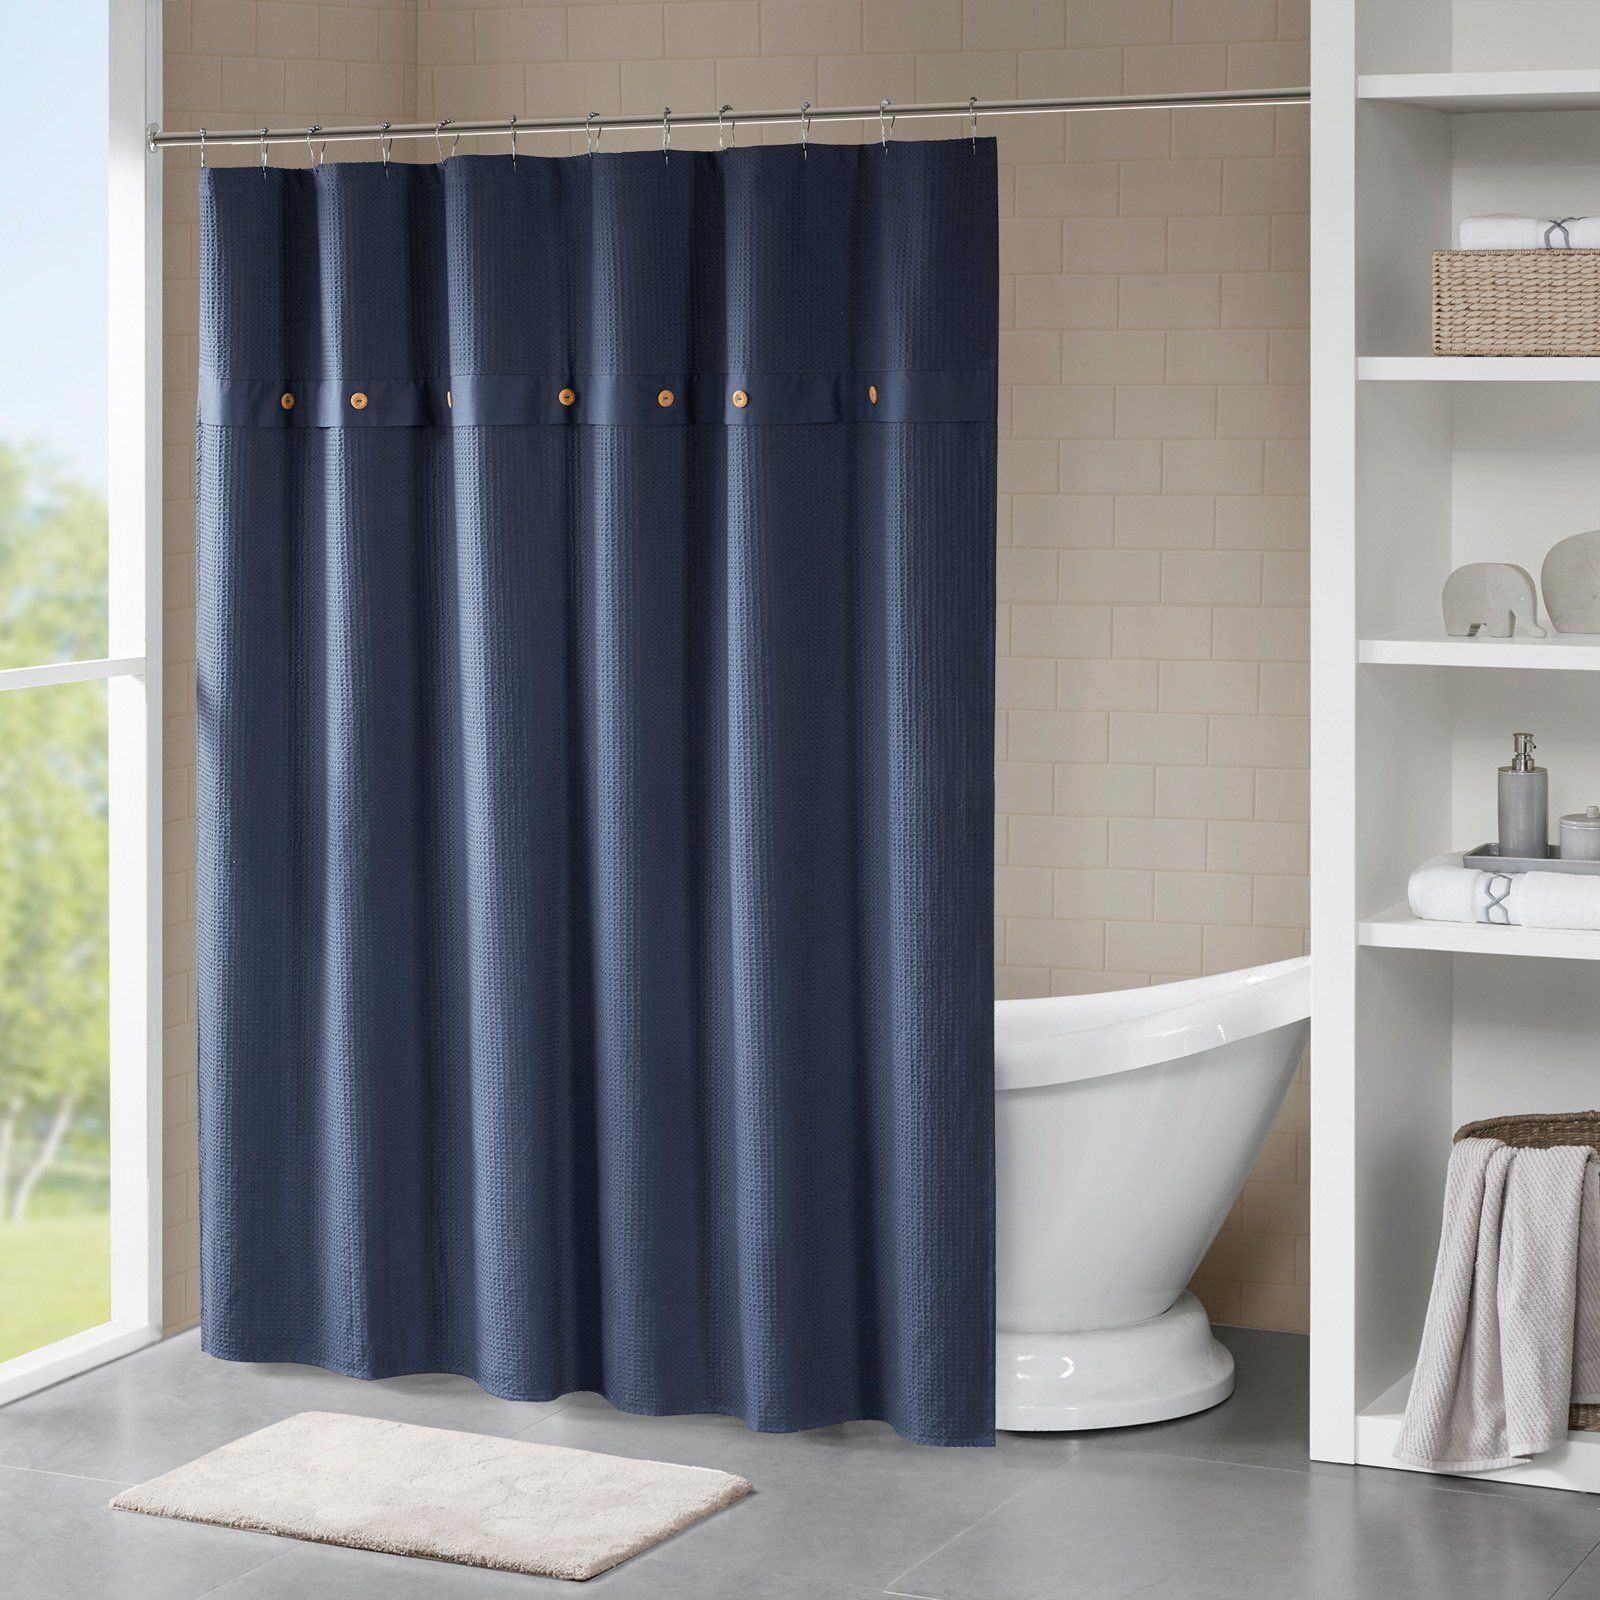 Madison Park Finley Waffle Weave Cotton Shower Curtain Navy